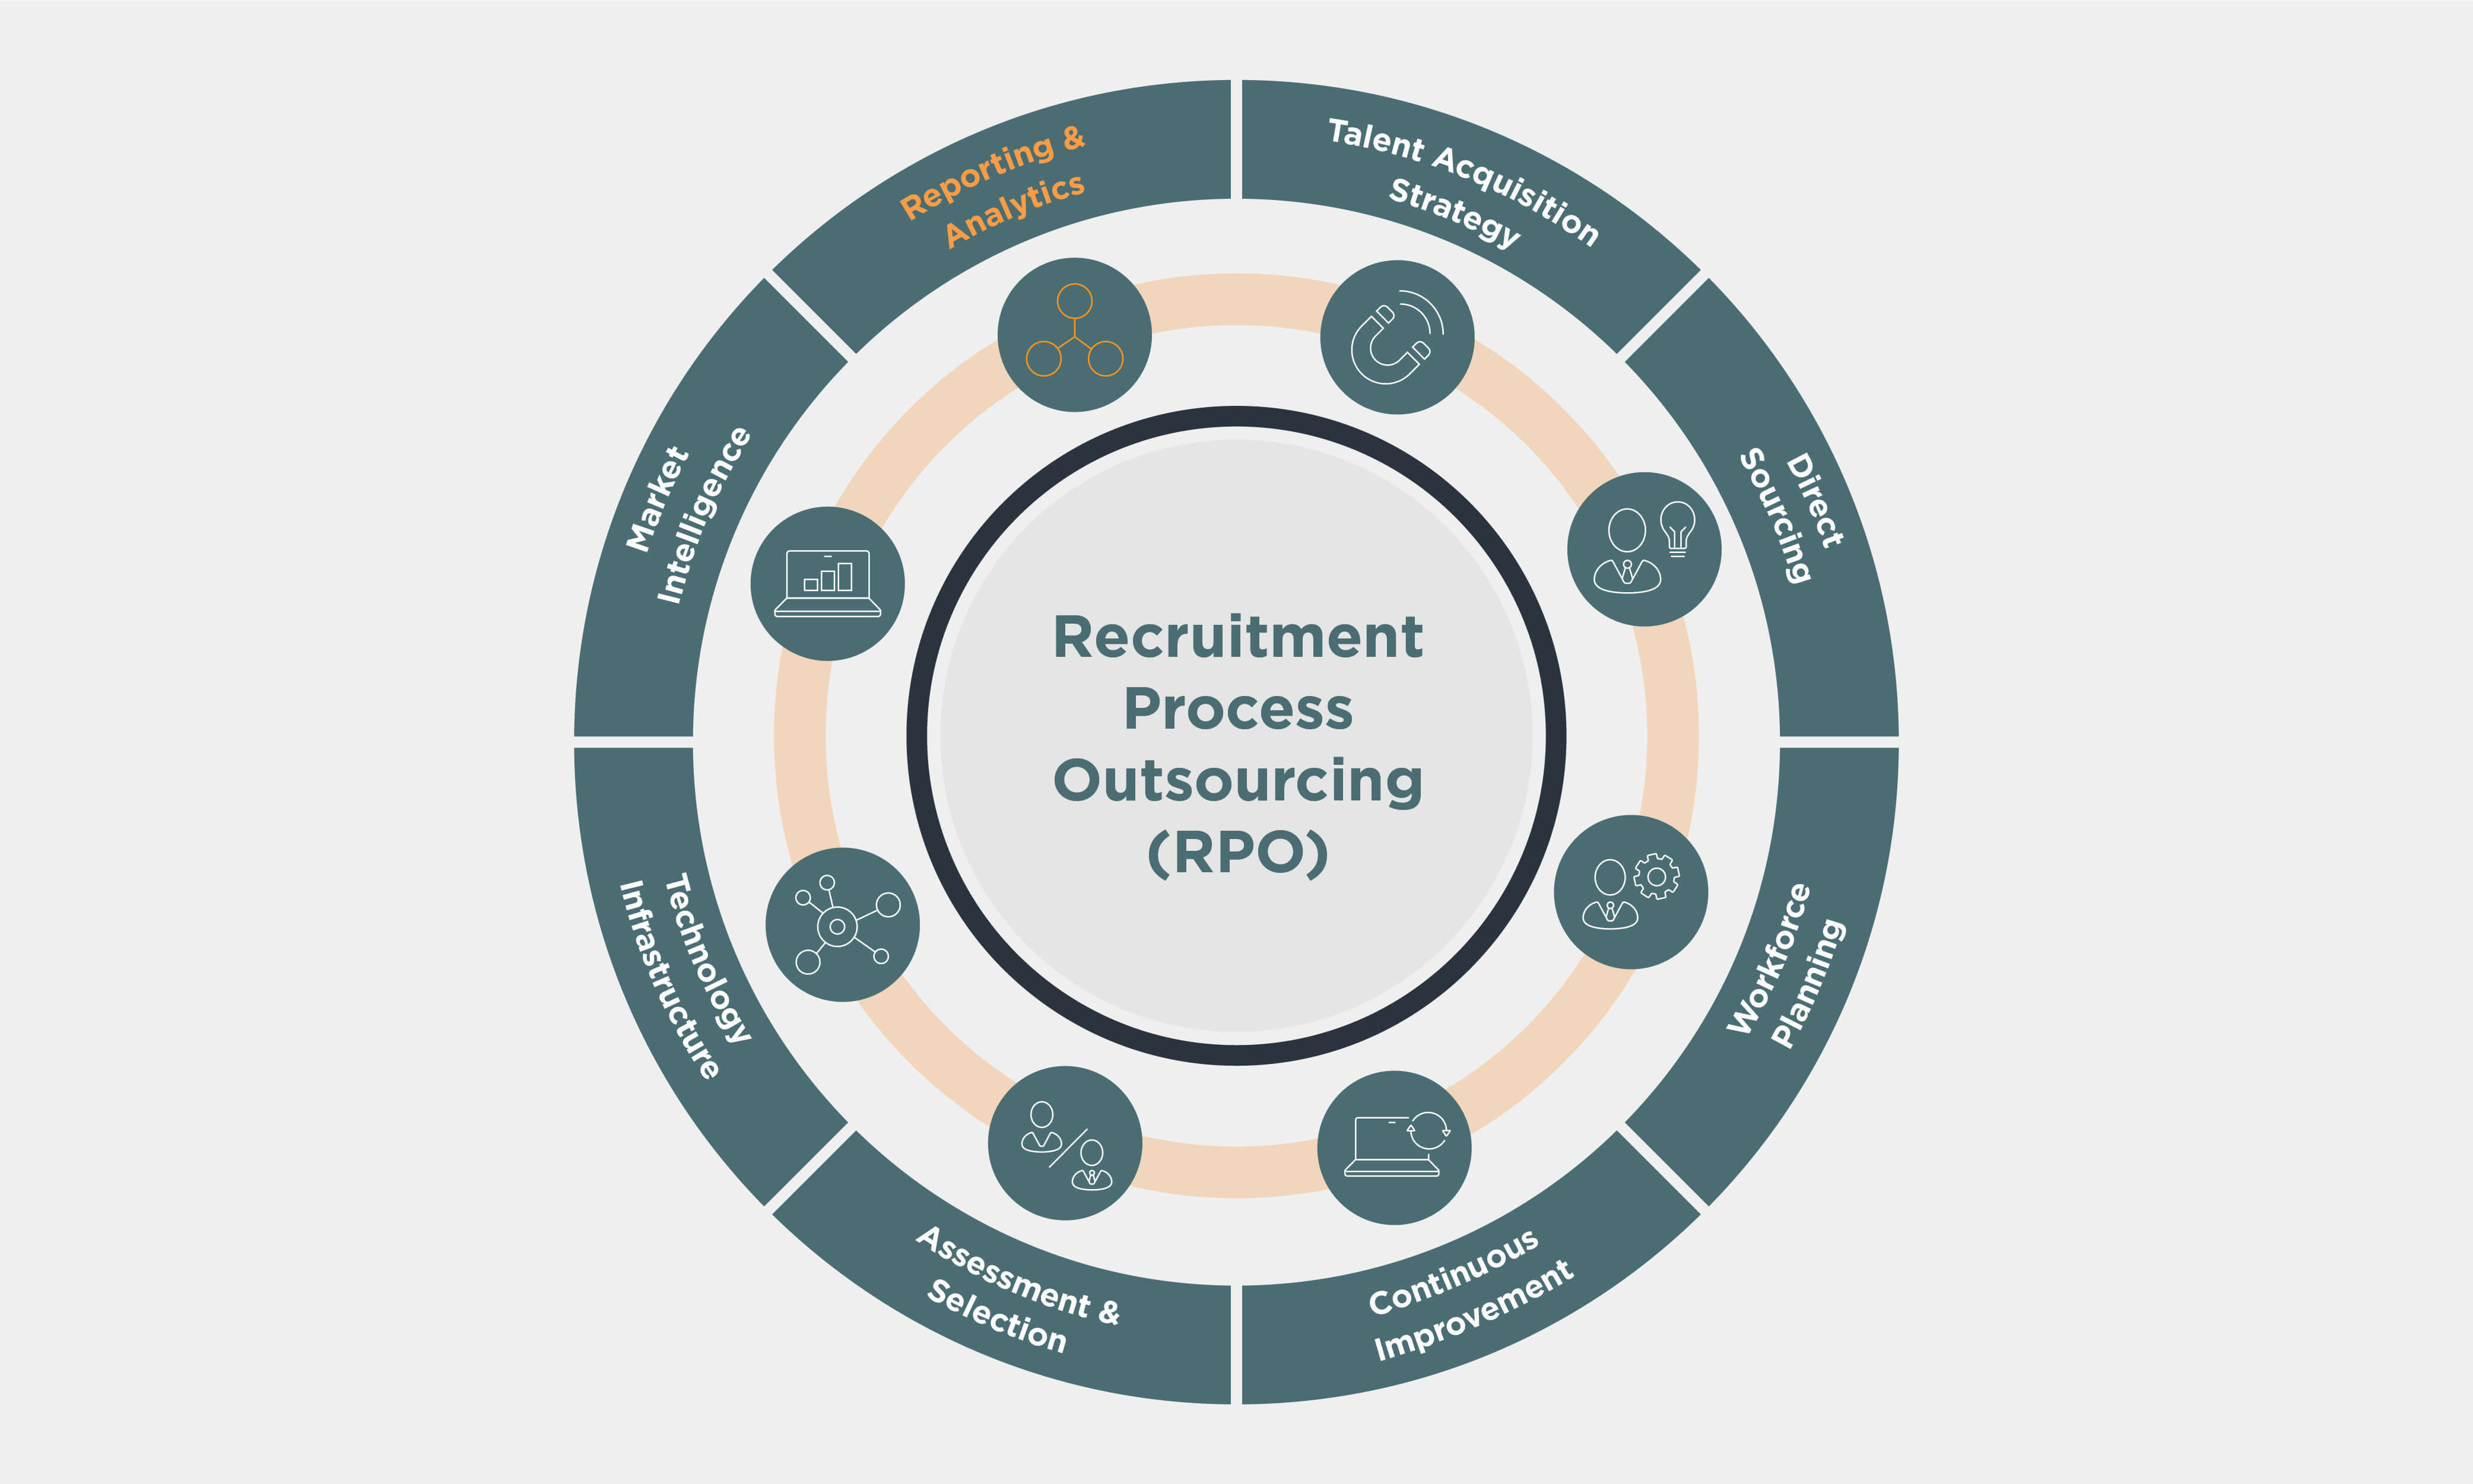 Recruitment Process Outsourcing (RPO) wheel with Reporting & Analytics highlighted in orange